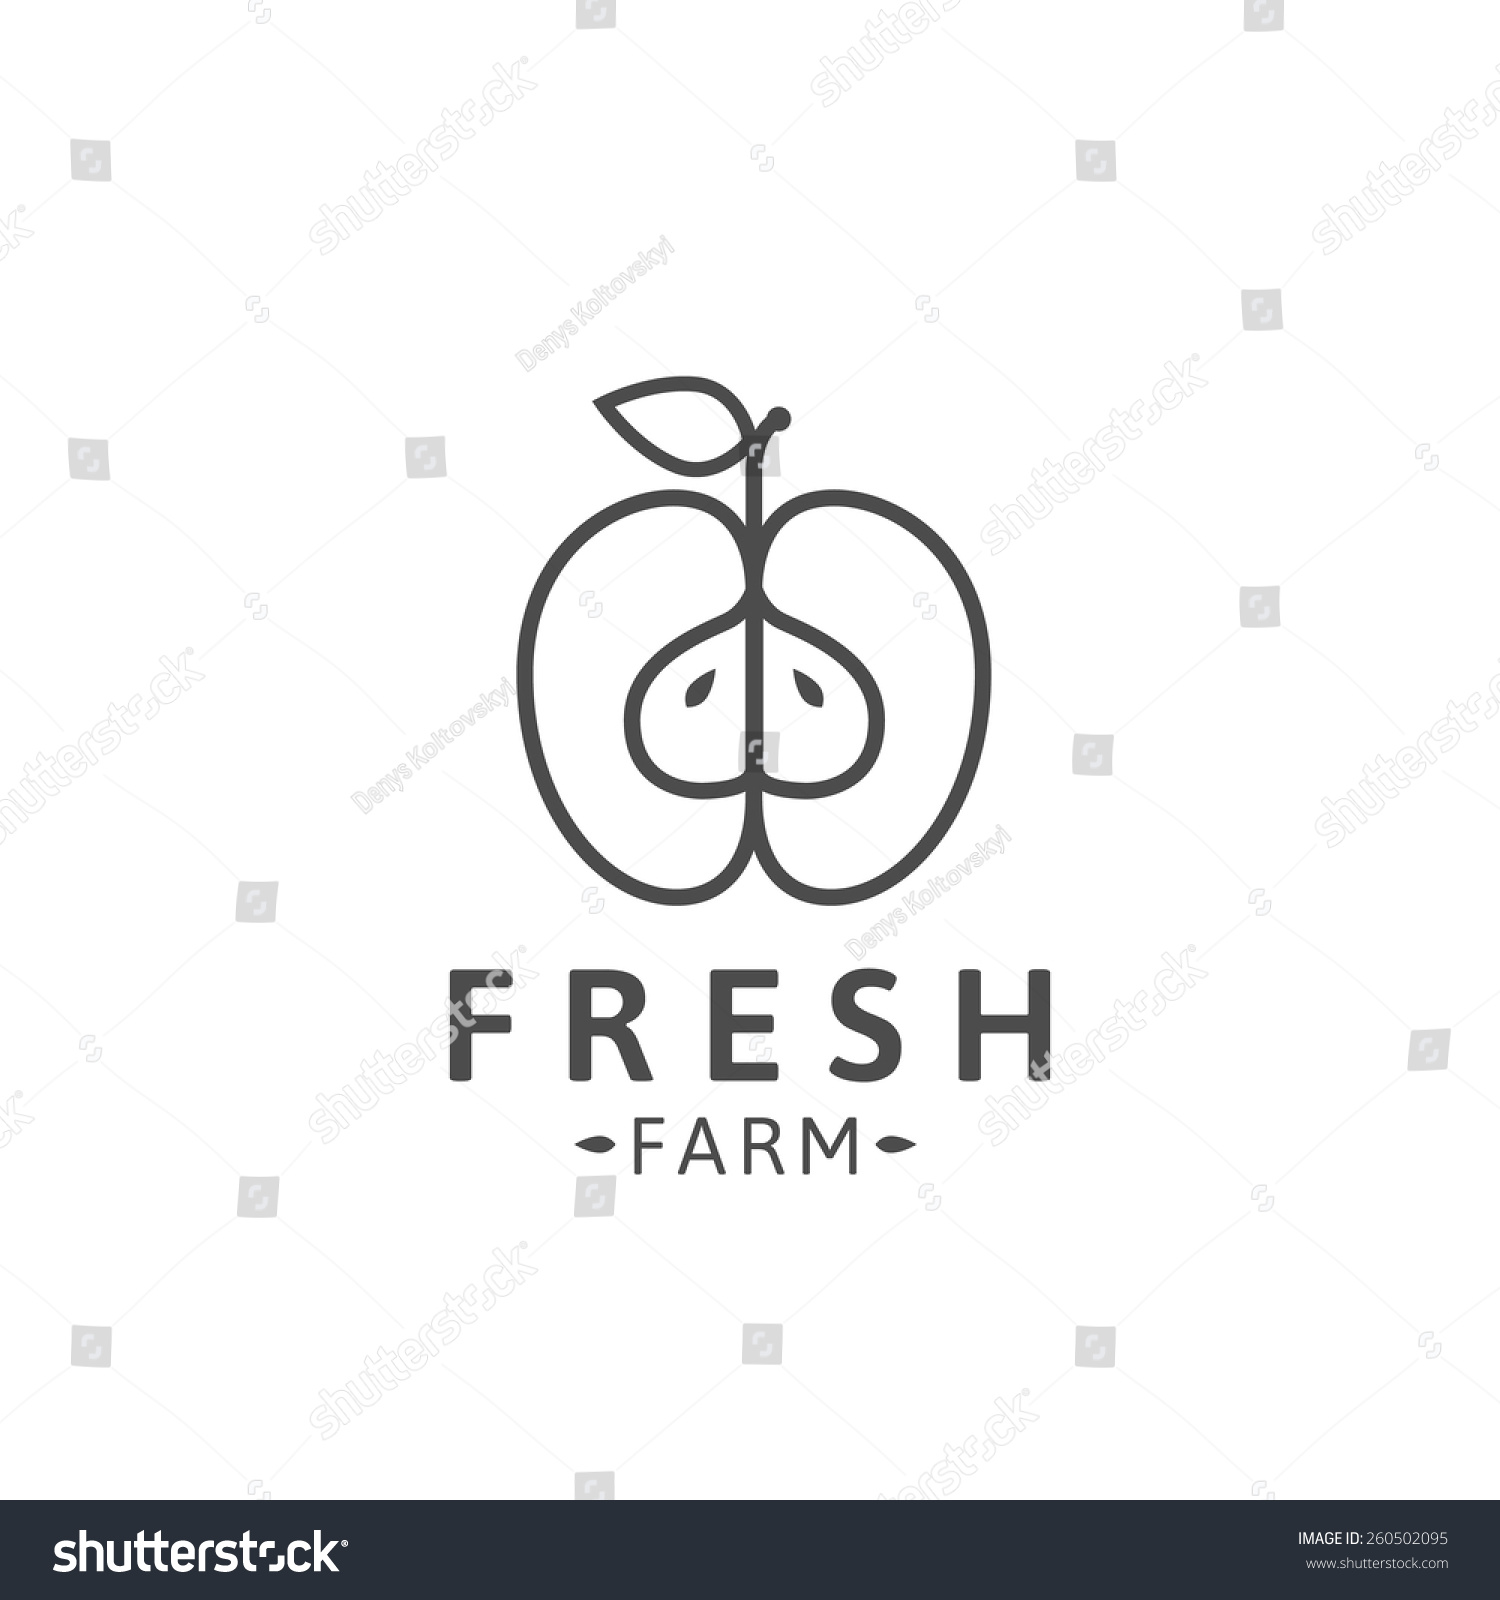 apple logo outline vector. outline apple logo template or icon. vector illustration